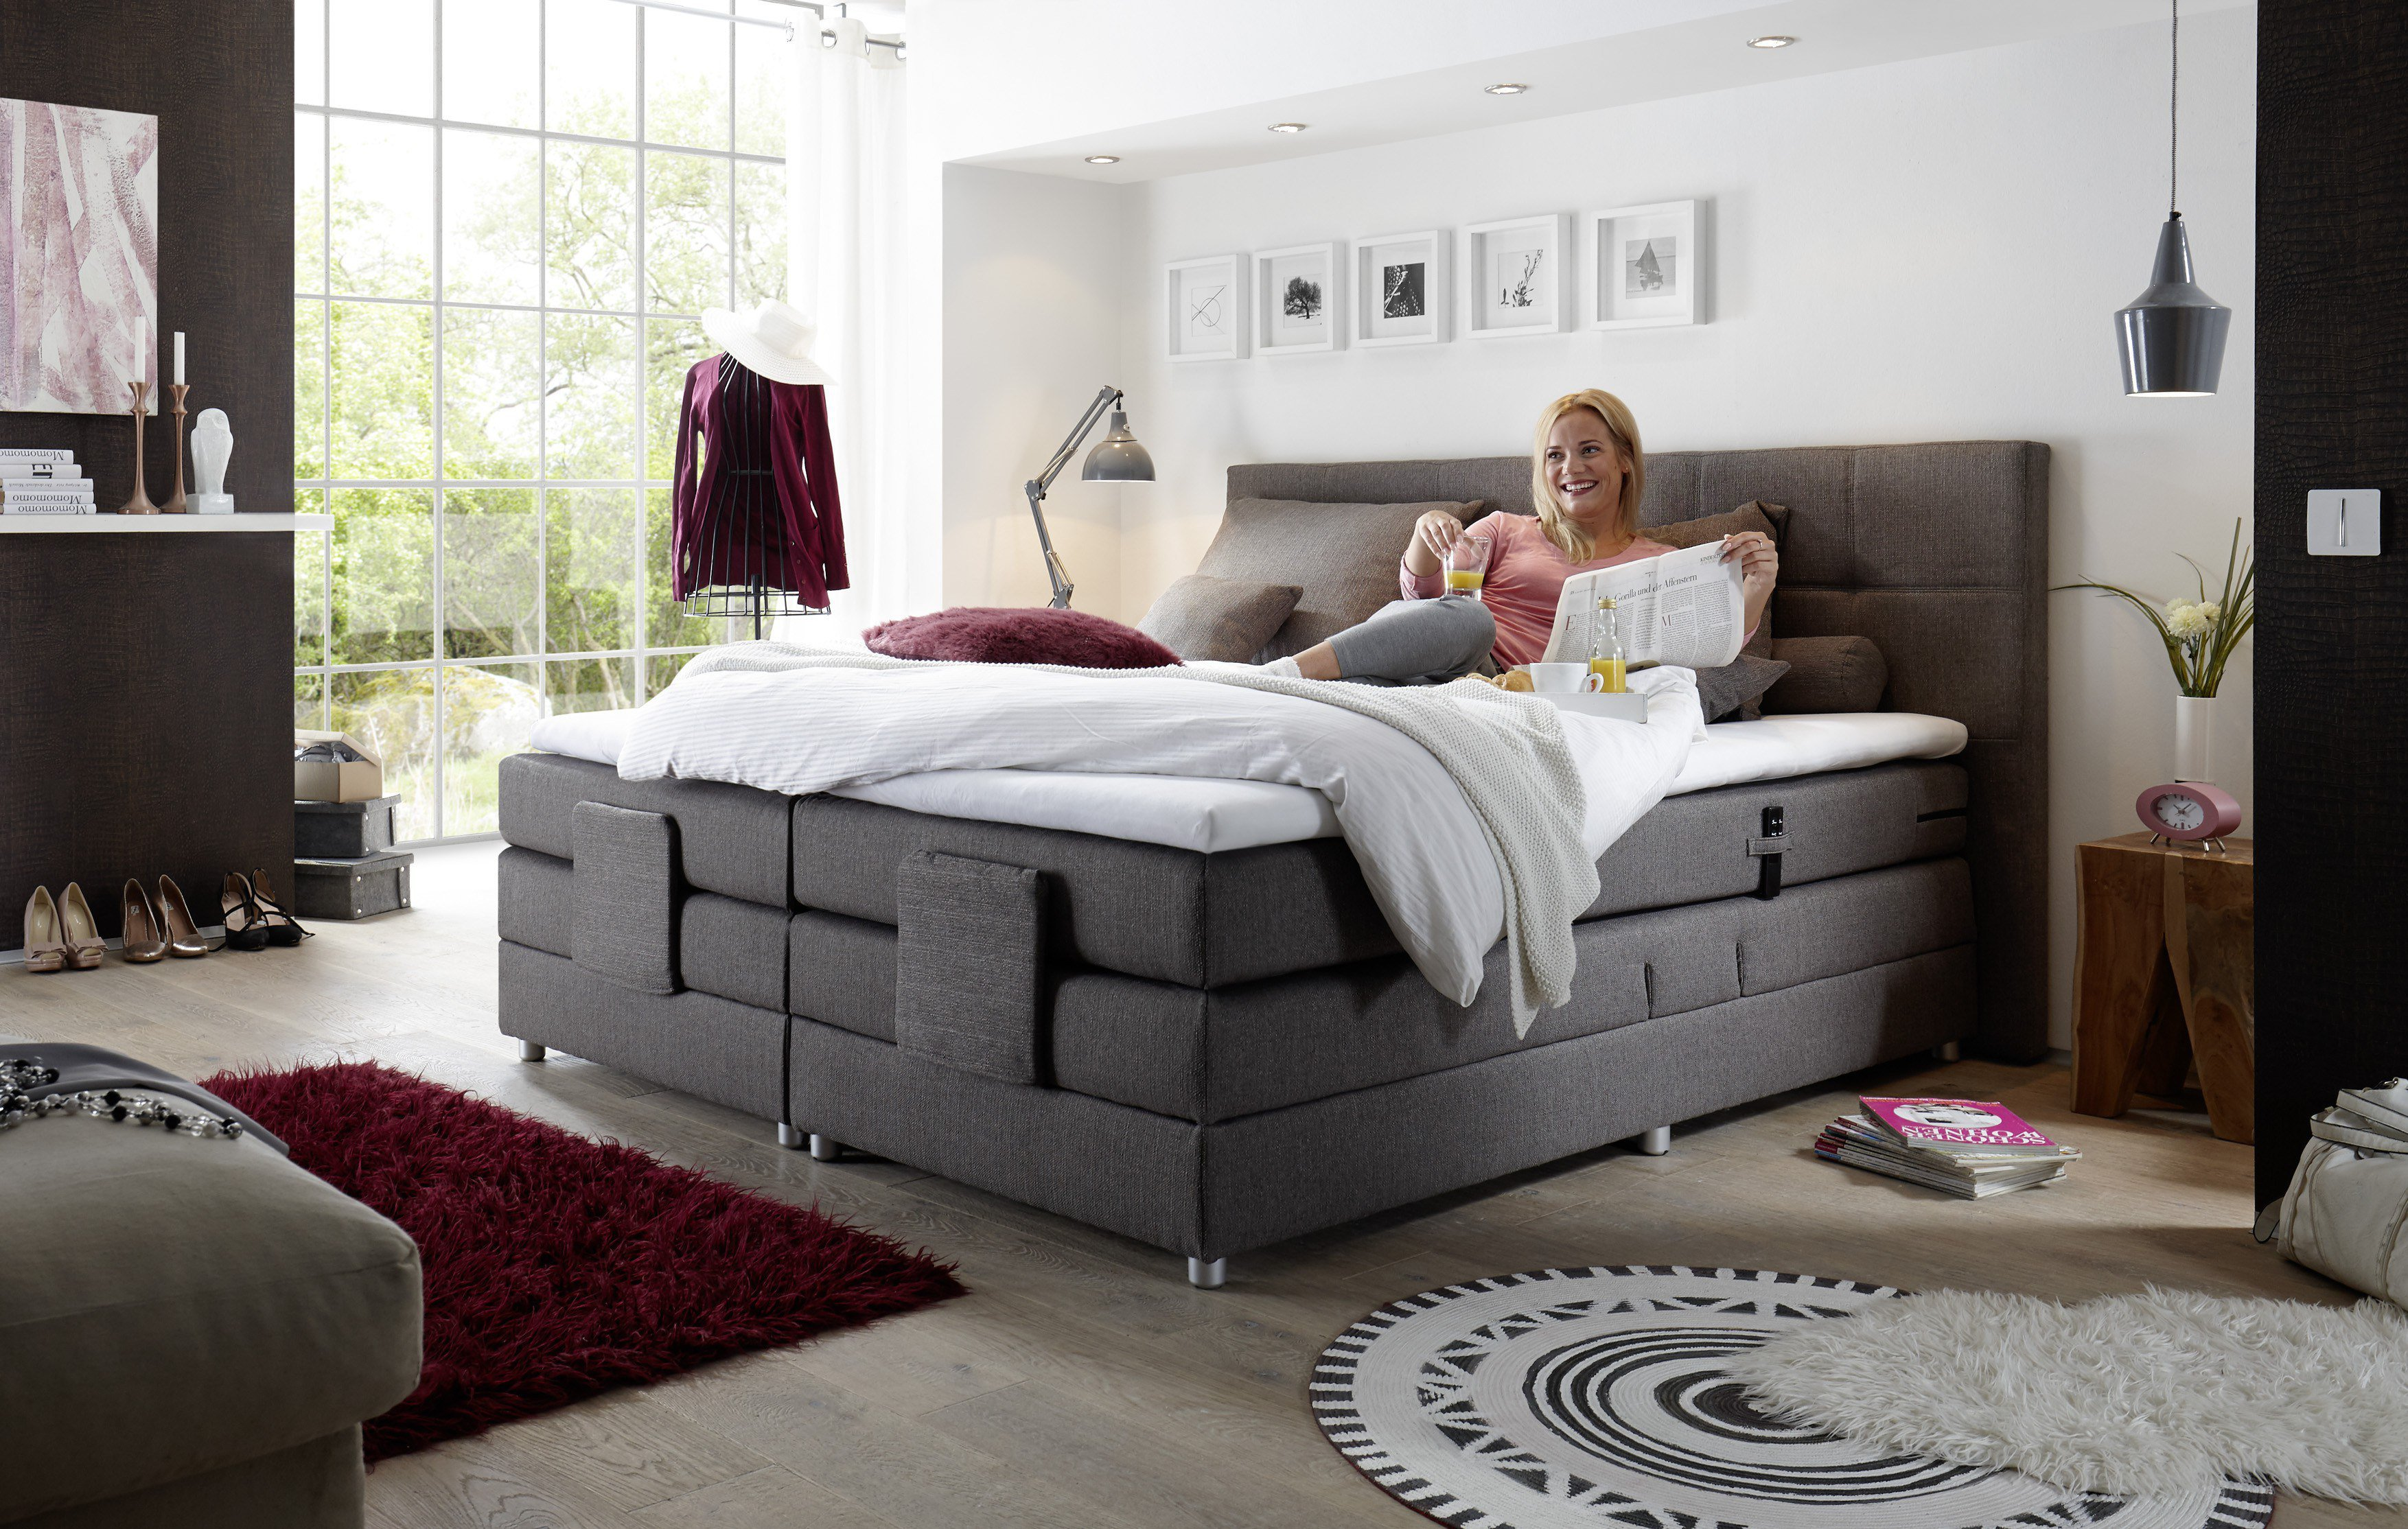 Boxspringbett Mit Motor Test Black Red White Boxspringbett Manolo / Juliann In Steingrau | Möbel Letz - Ihr Online-shop